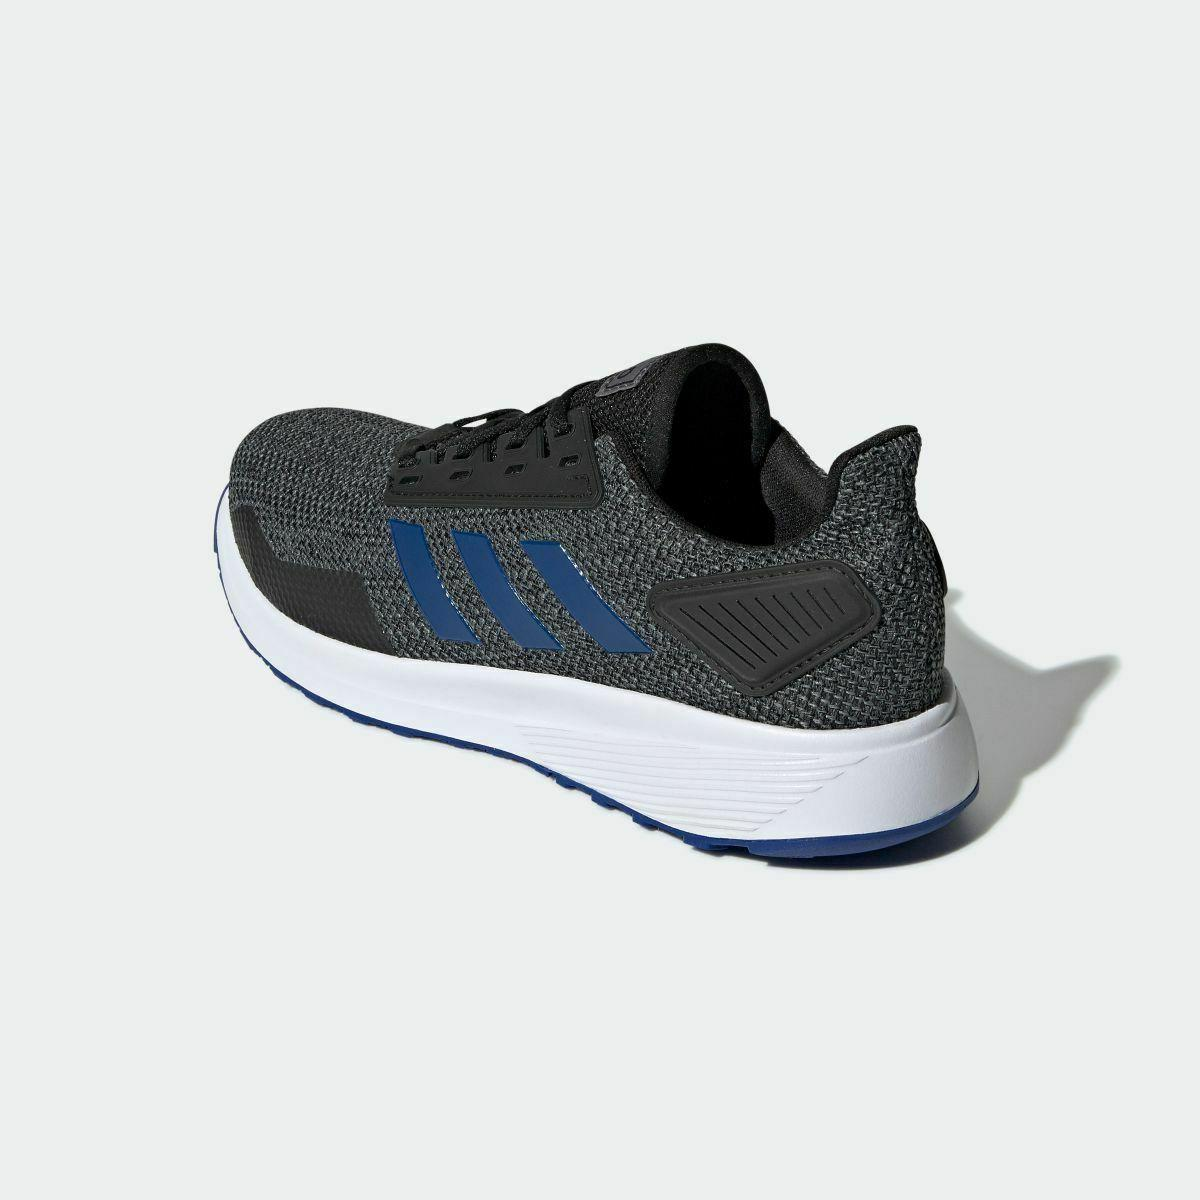 Adidas Duramo Black Blue Grey EE9685 Running Sizes